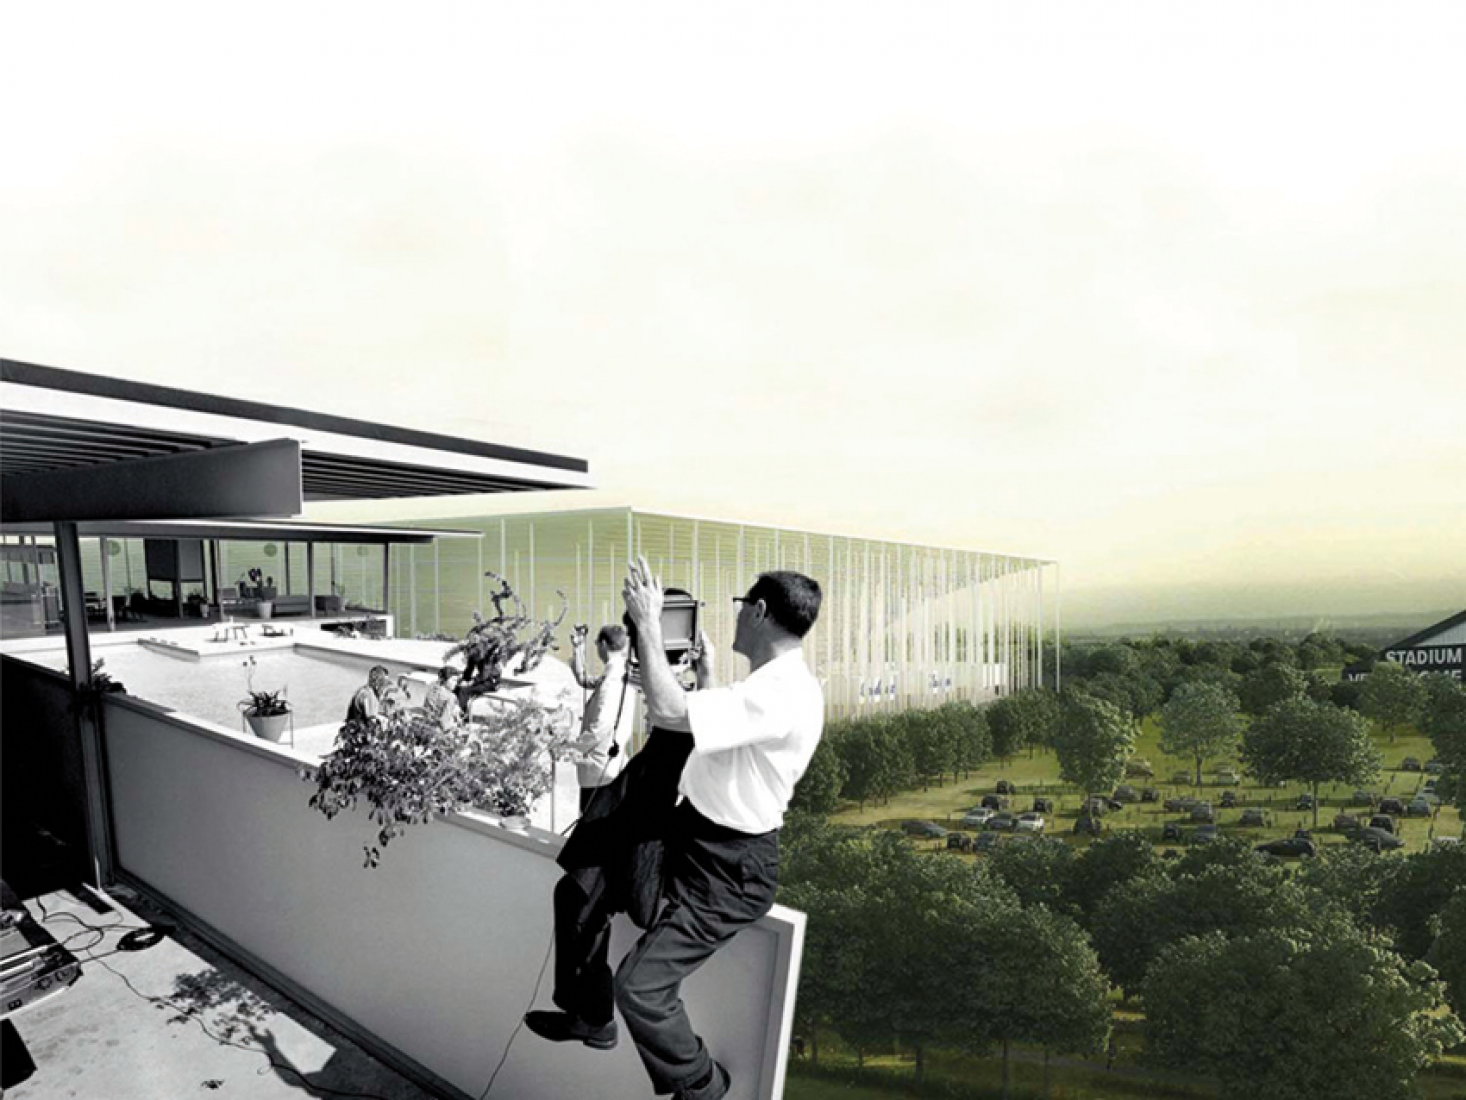 OMA's vision for Bordeaux. Image courtesy of © Arc en Rêve.